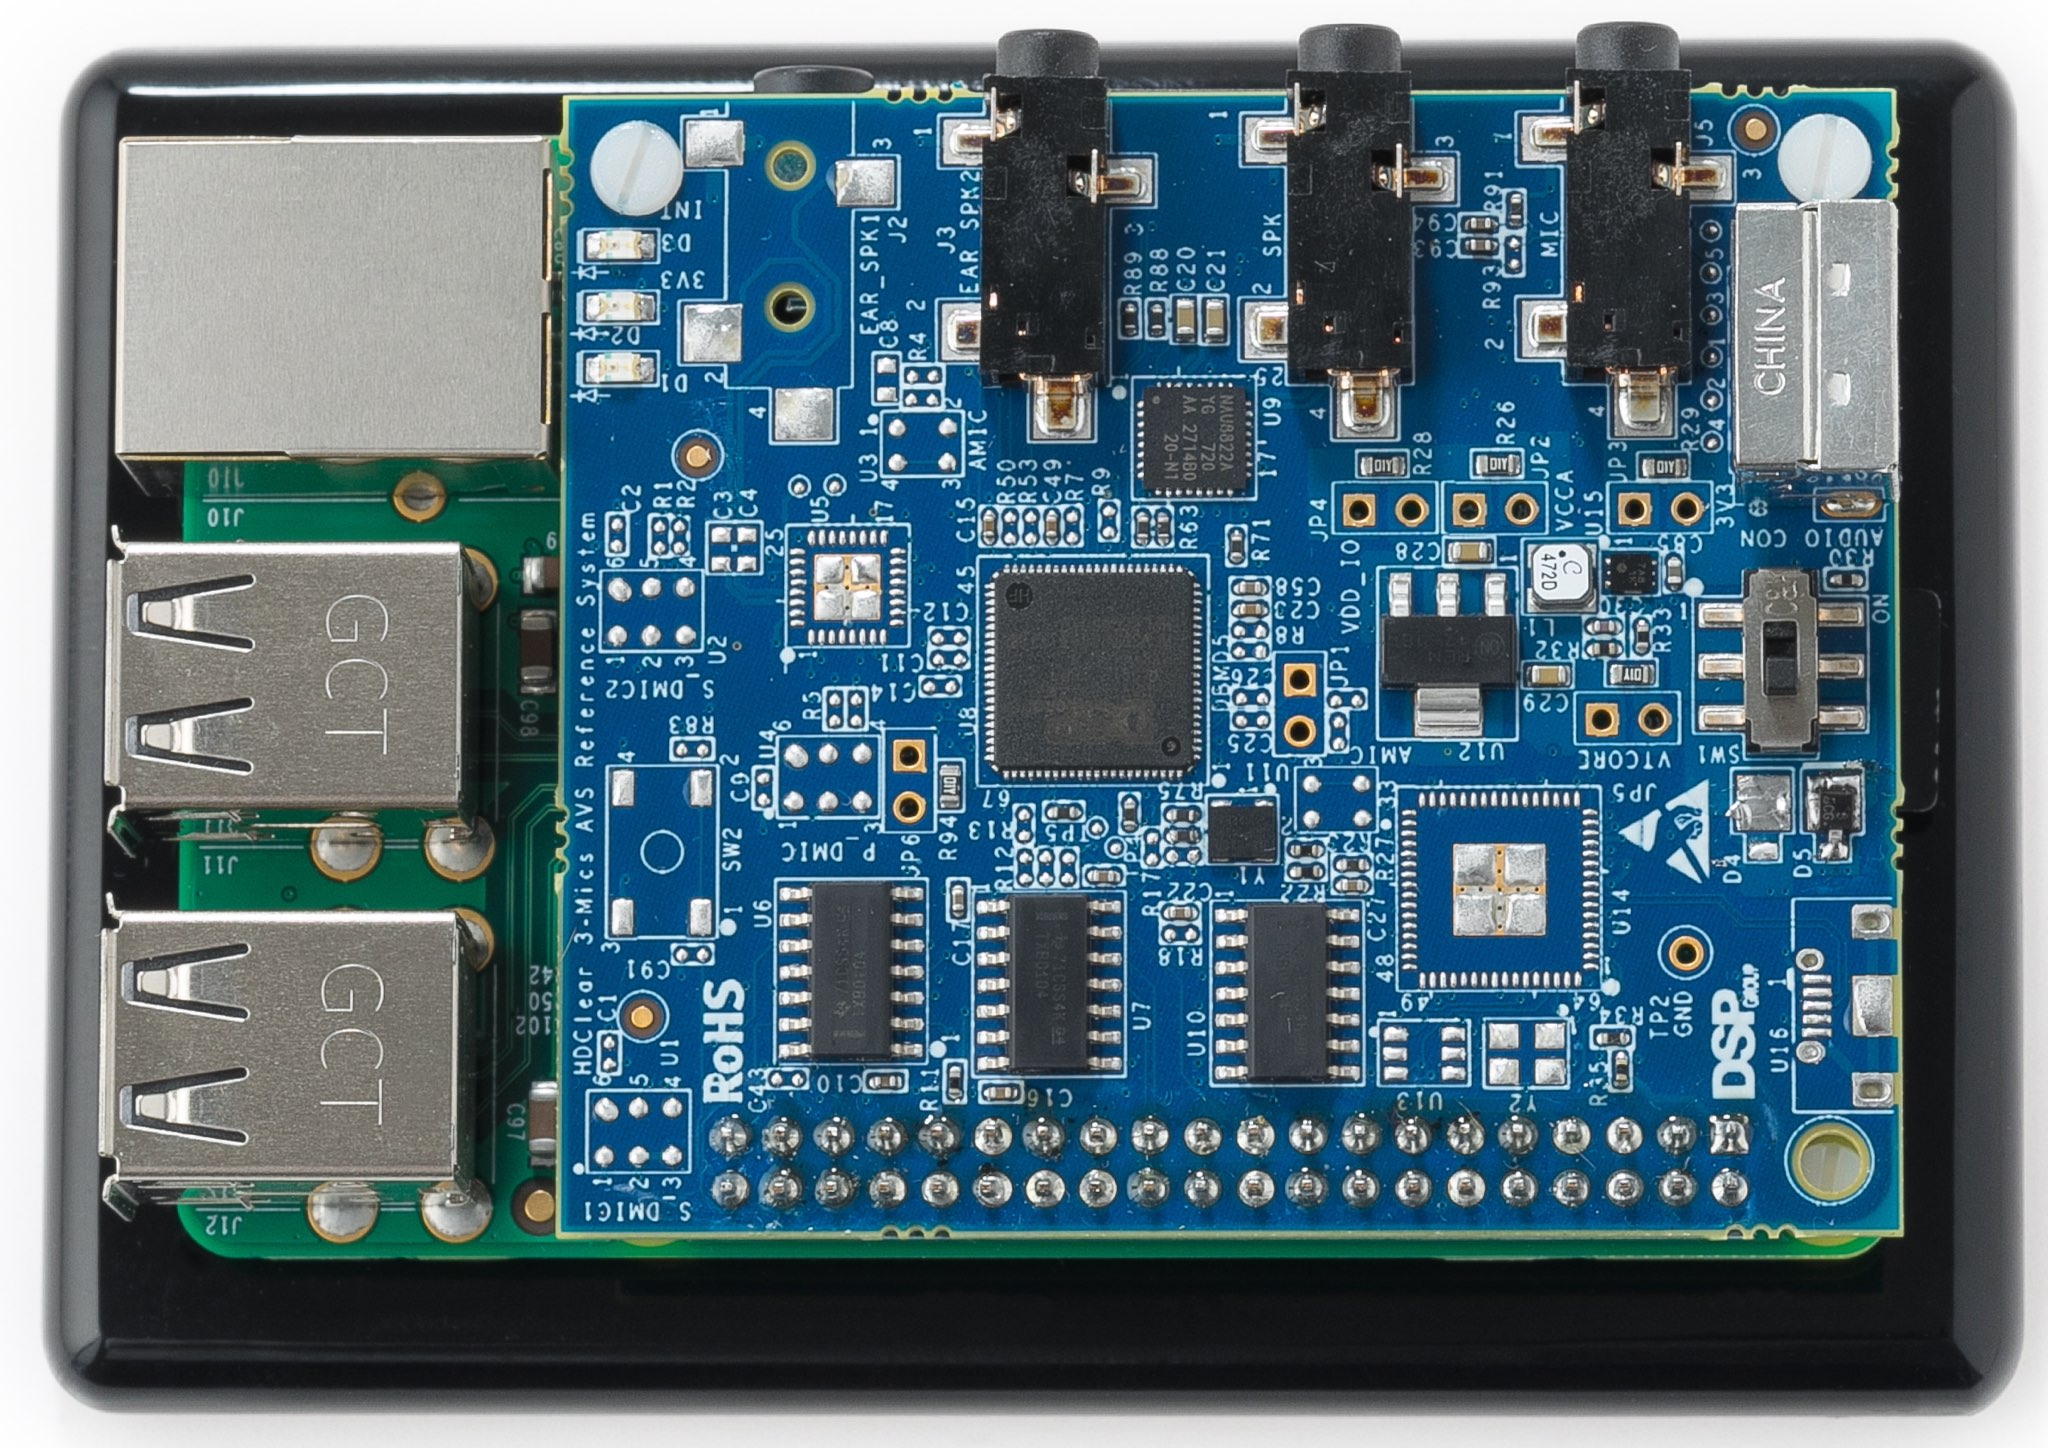 An image showing DSP's HDClear 3-mic development kit for Alexa Voice Service